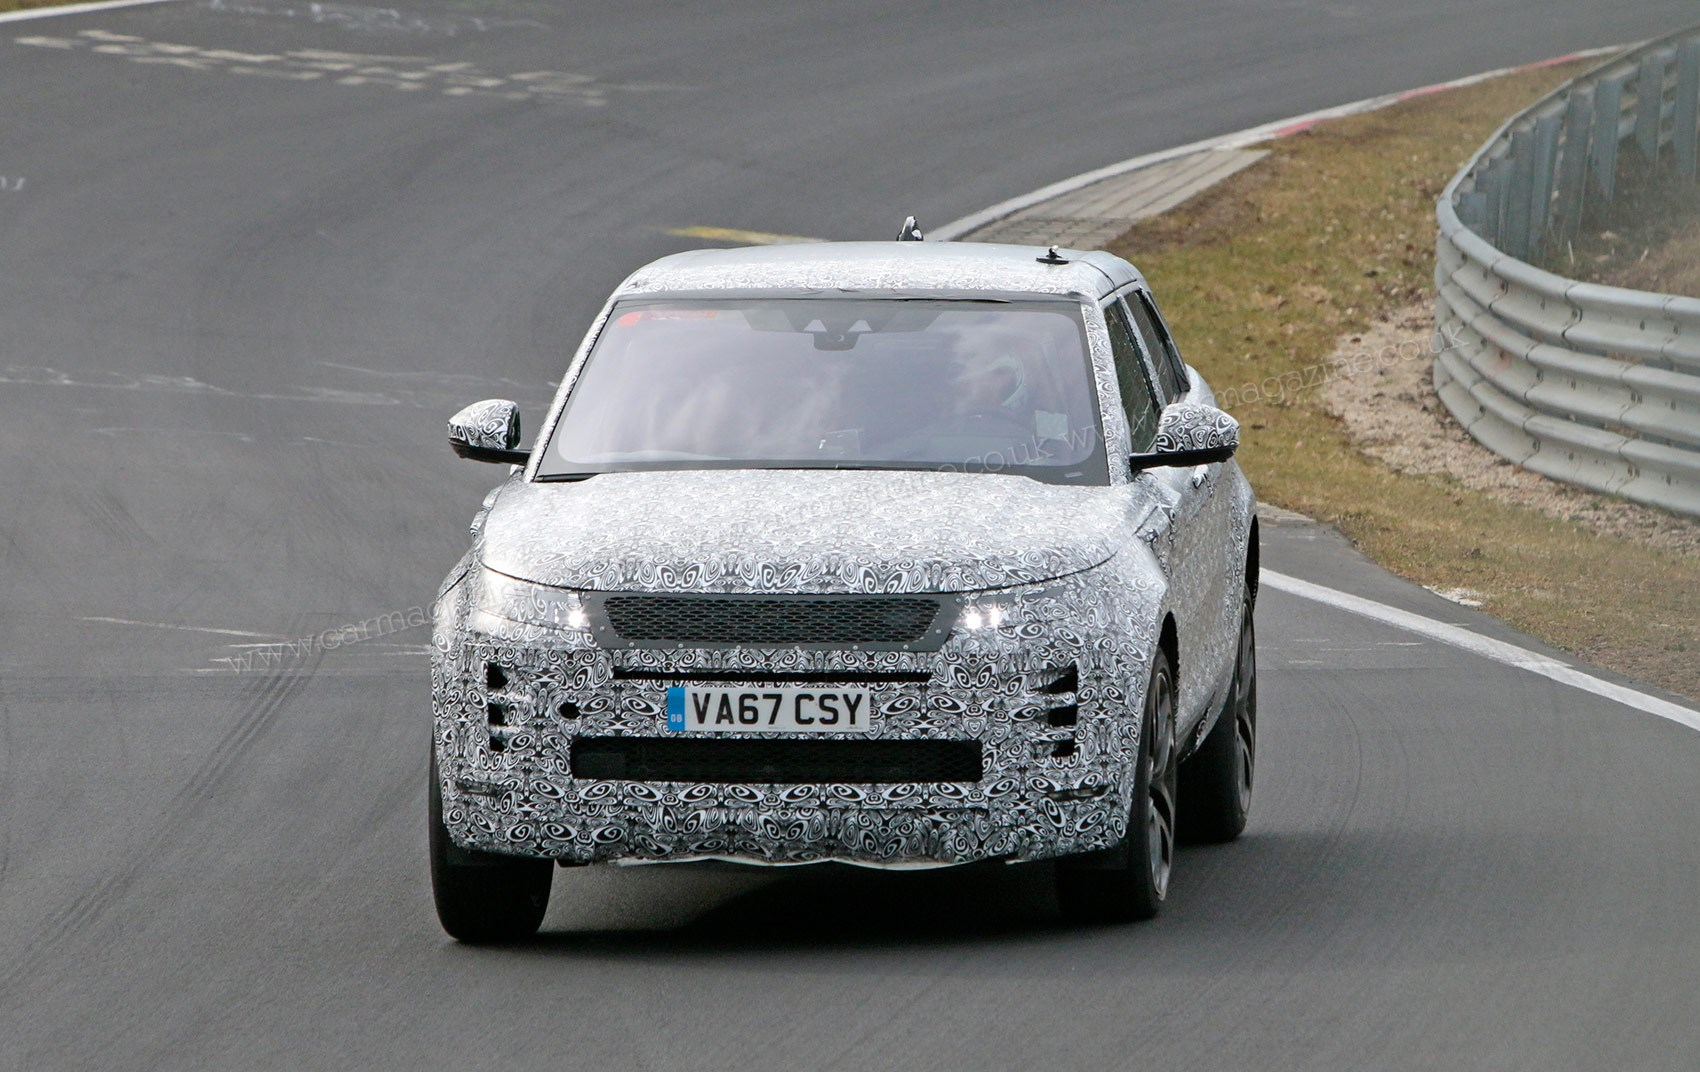 New 2019 Range Rover Evoque Spy Photos Specs Prices Car Magazine Putting The Control System Together Spu Design Has Now Been Is Testing At Nurburgring